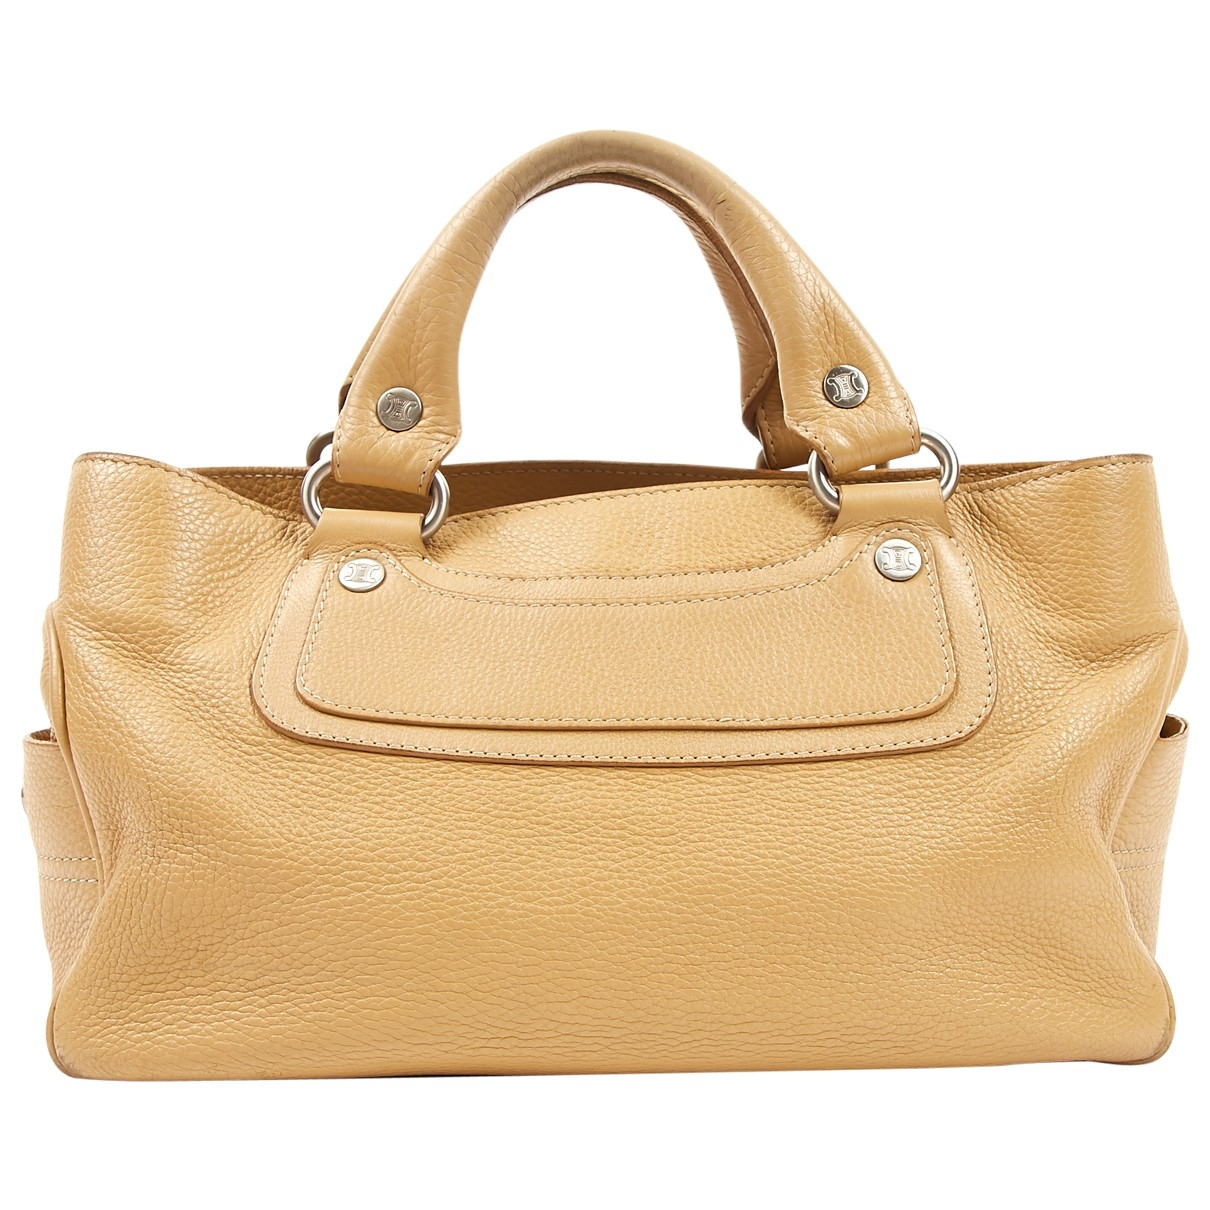 Celine Boogie Beige Leather handbag for Women \N